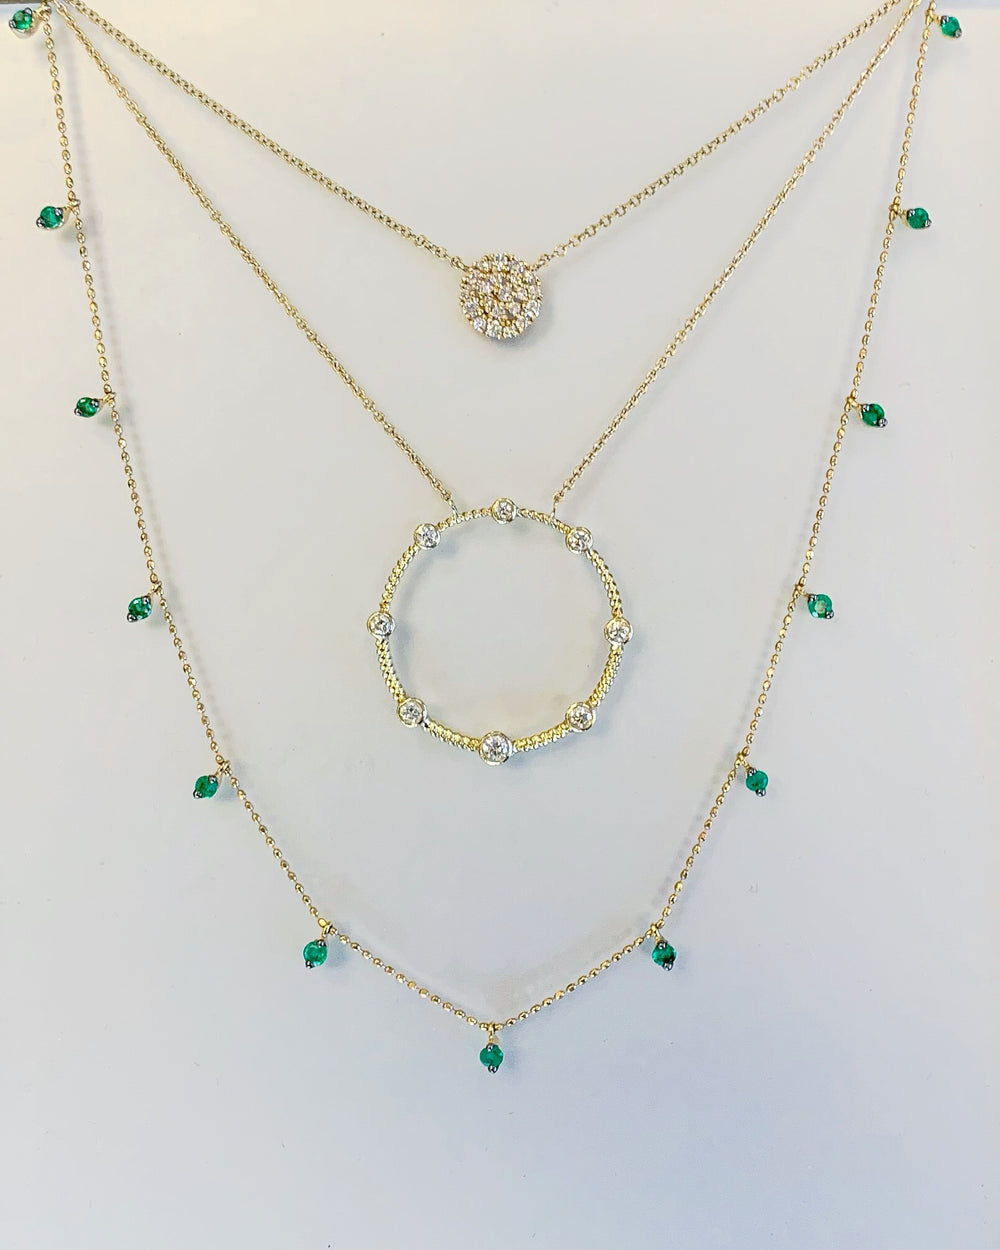 3 necklaces layered. yellow gold diamond pavé disk, 14k yellow gold diamond open negative space circle pendant, and 14k yellow gold emerald dangle drop necklace